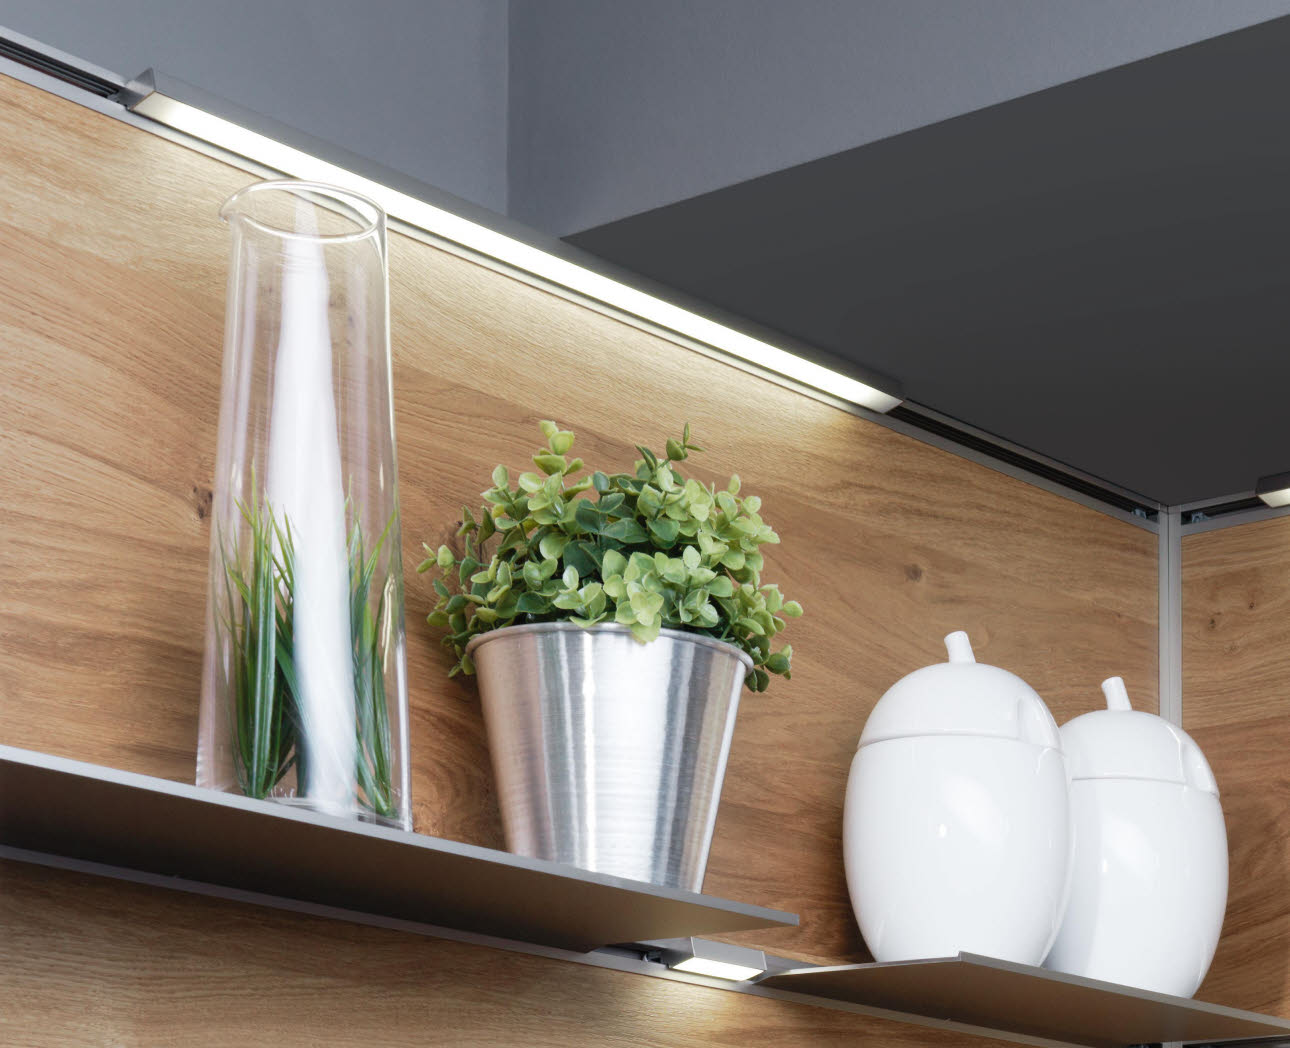 Attachable shelf - vase